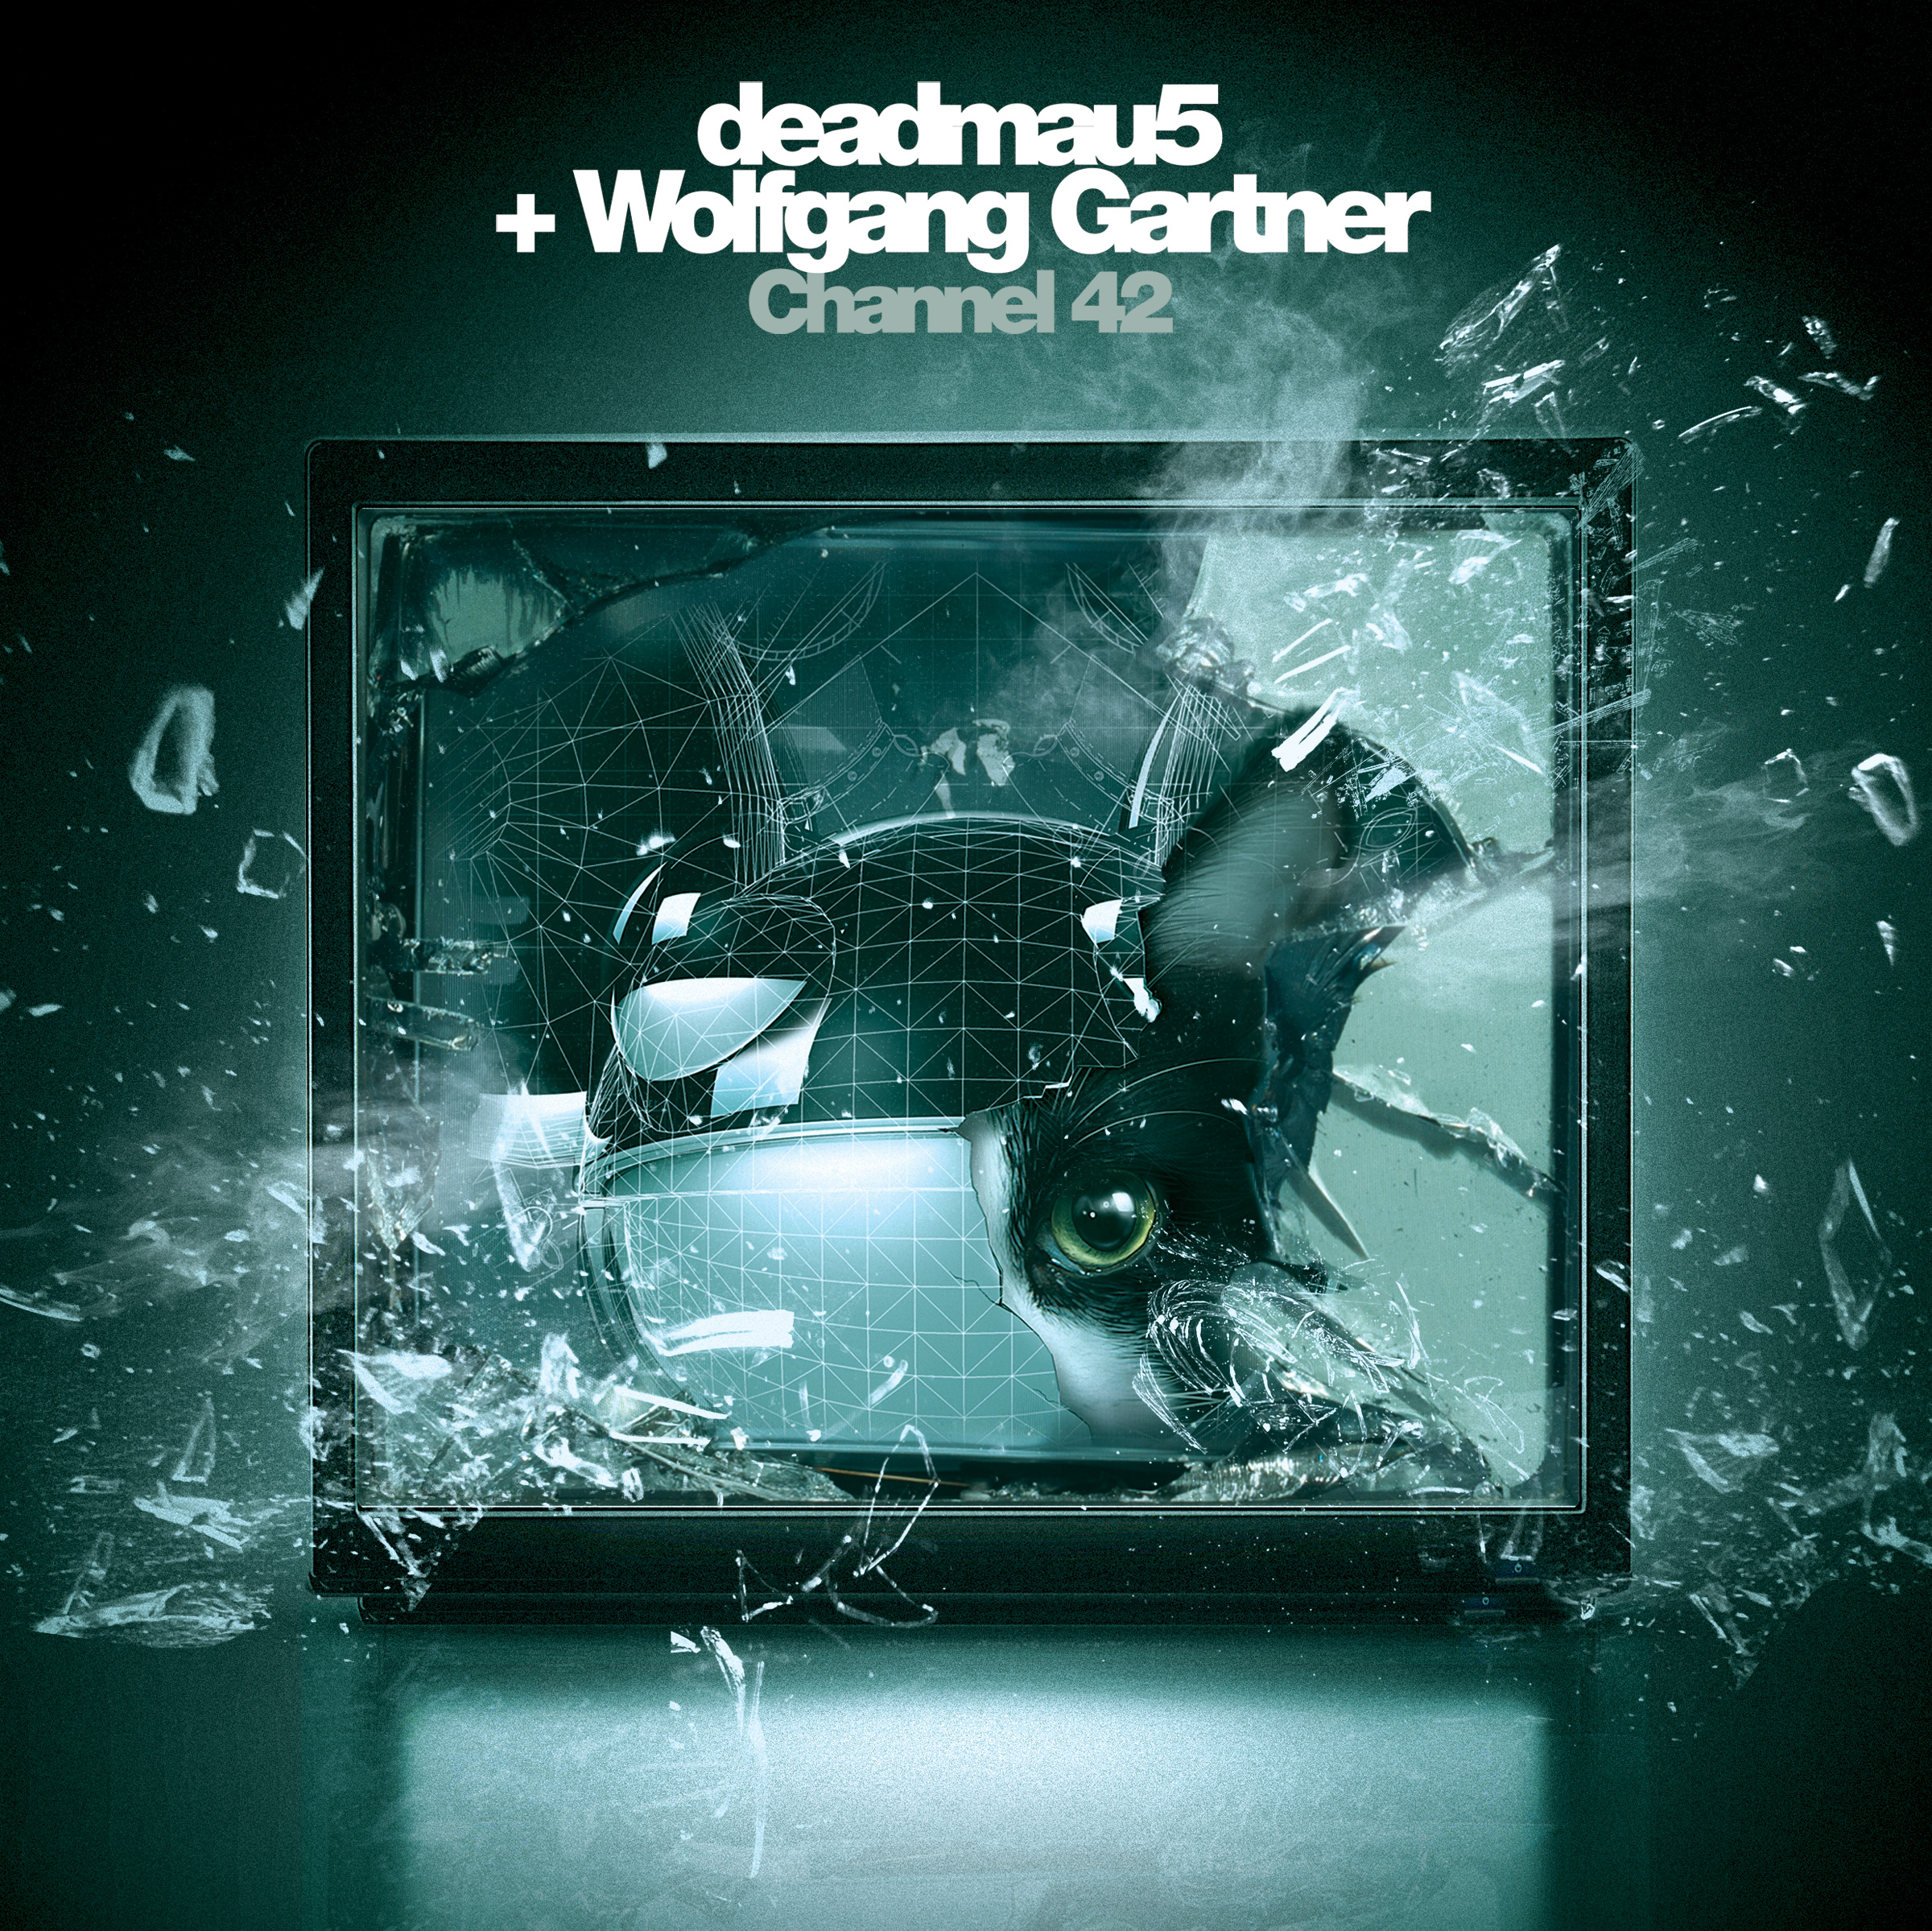 deadmau5wolfgangegartner-channel42remixes-youredm